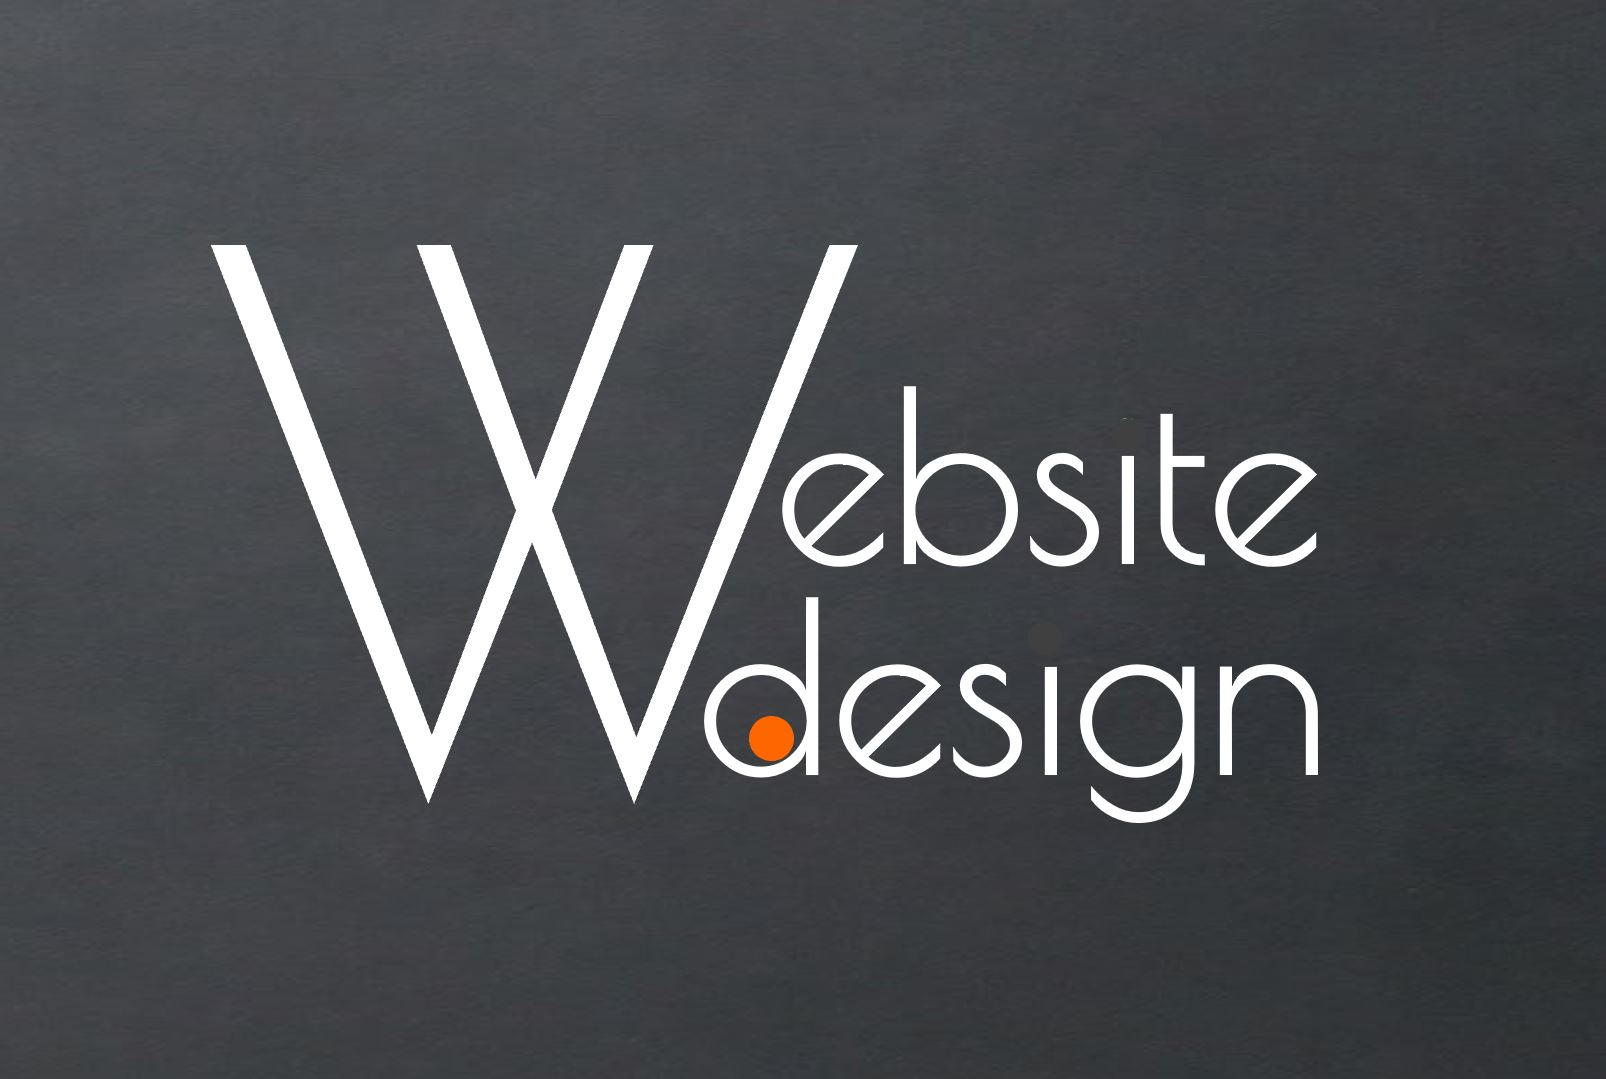 Minnesota Based Website Design for Small Businesses with Big Ideas.  Digital strategies, content, designthe chatter. Let's design a website worthy of your goals